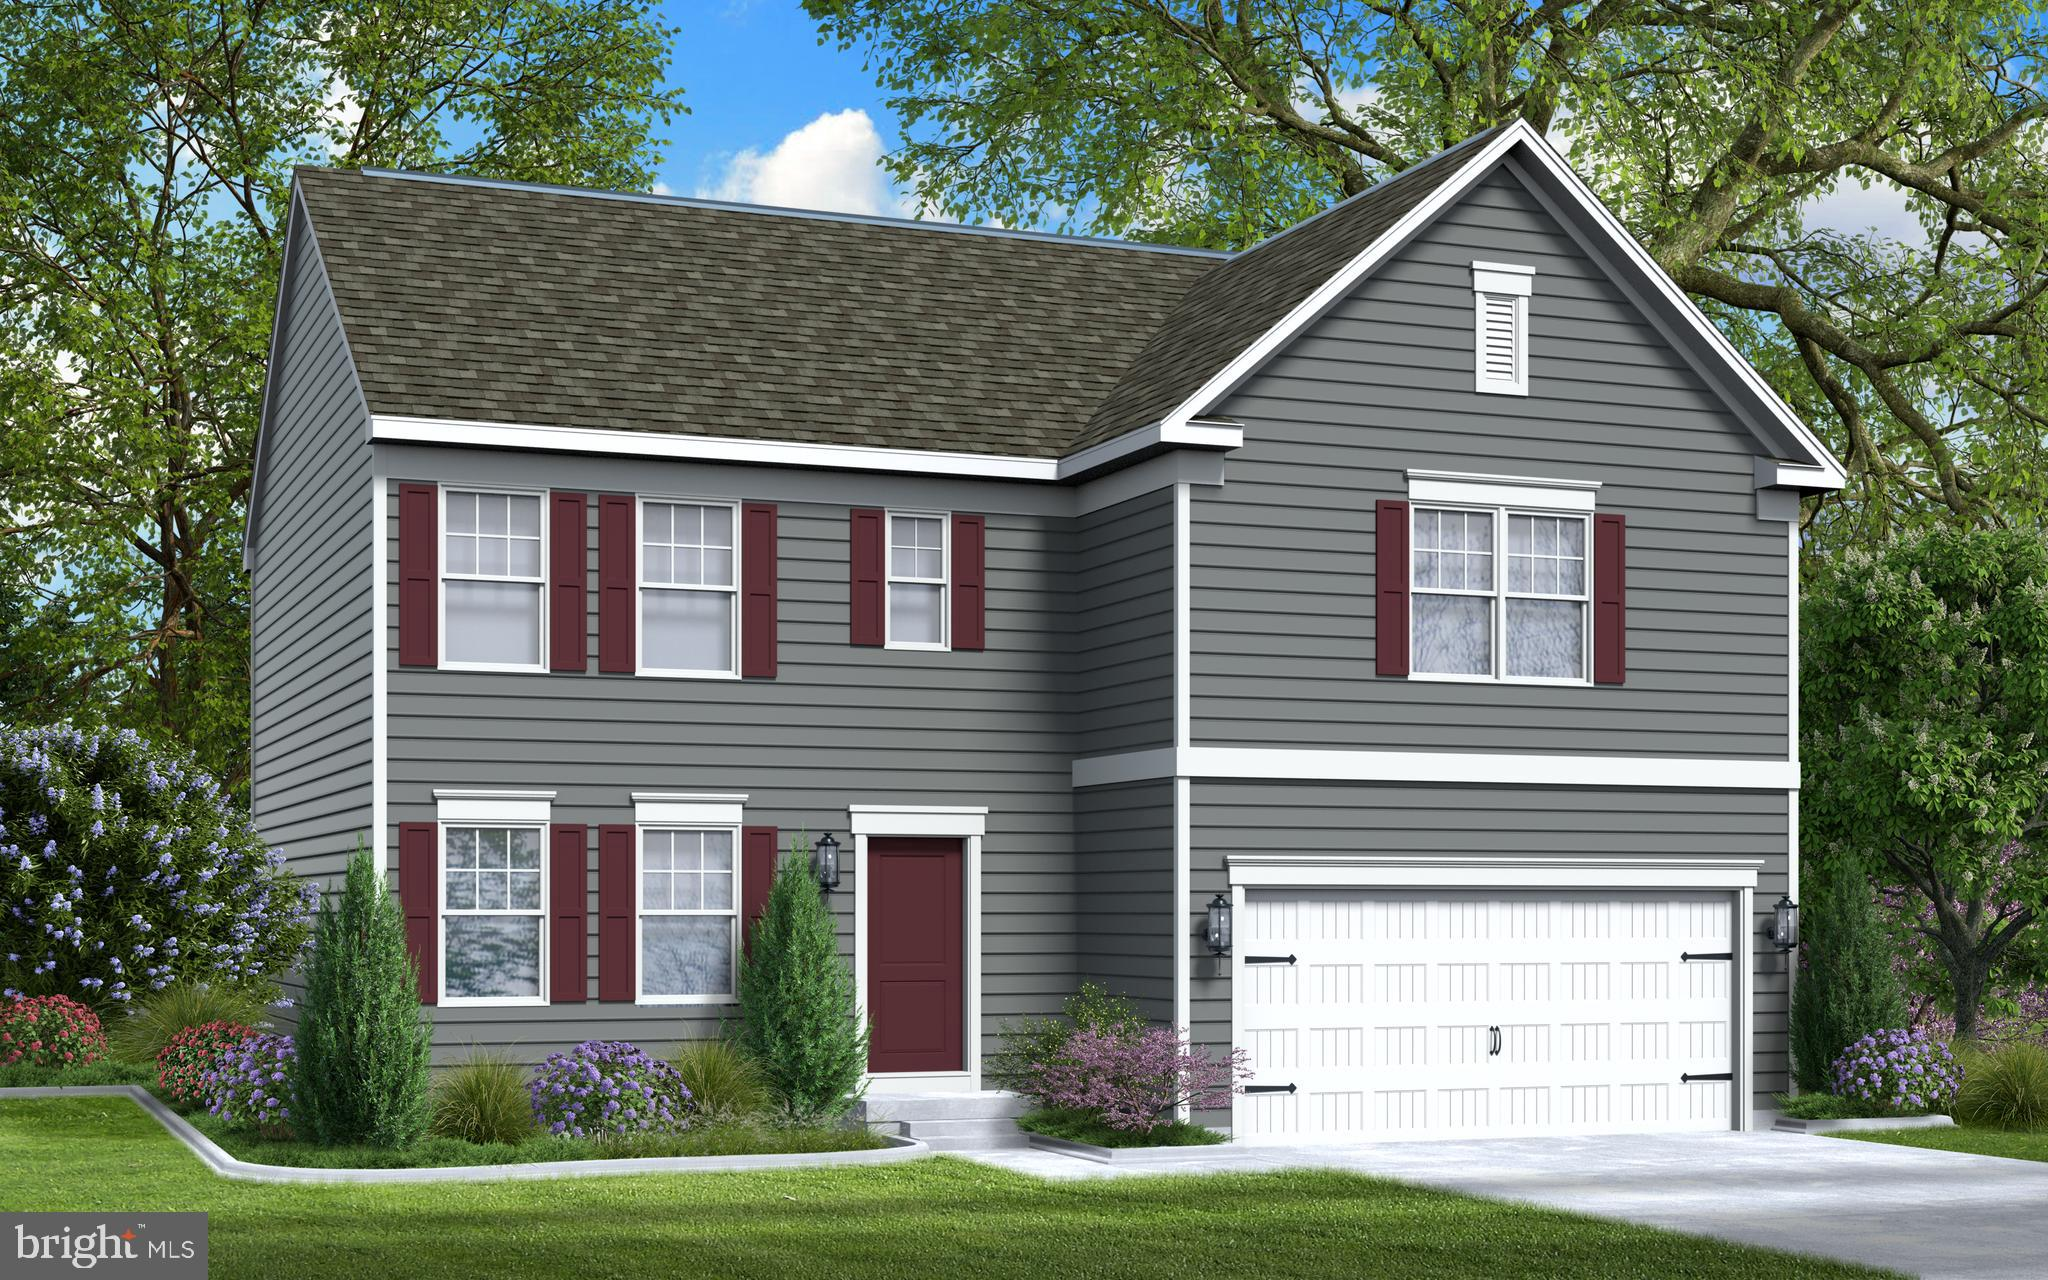 Ruby Model offered by Gemraft Homes. Two -Story single-family home, 4BR/2.5 BA, 2217 sq ft, 2-car ga